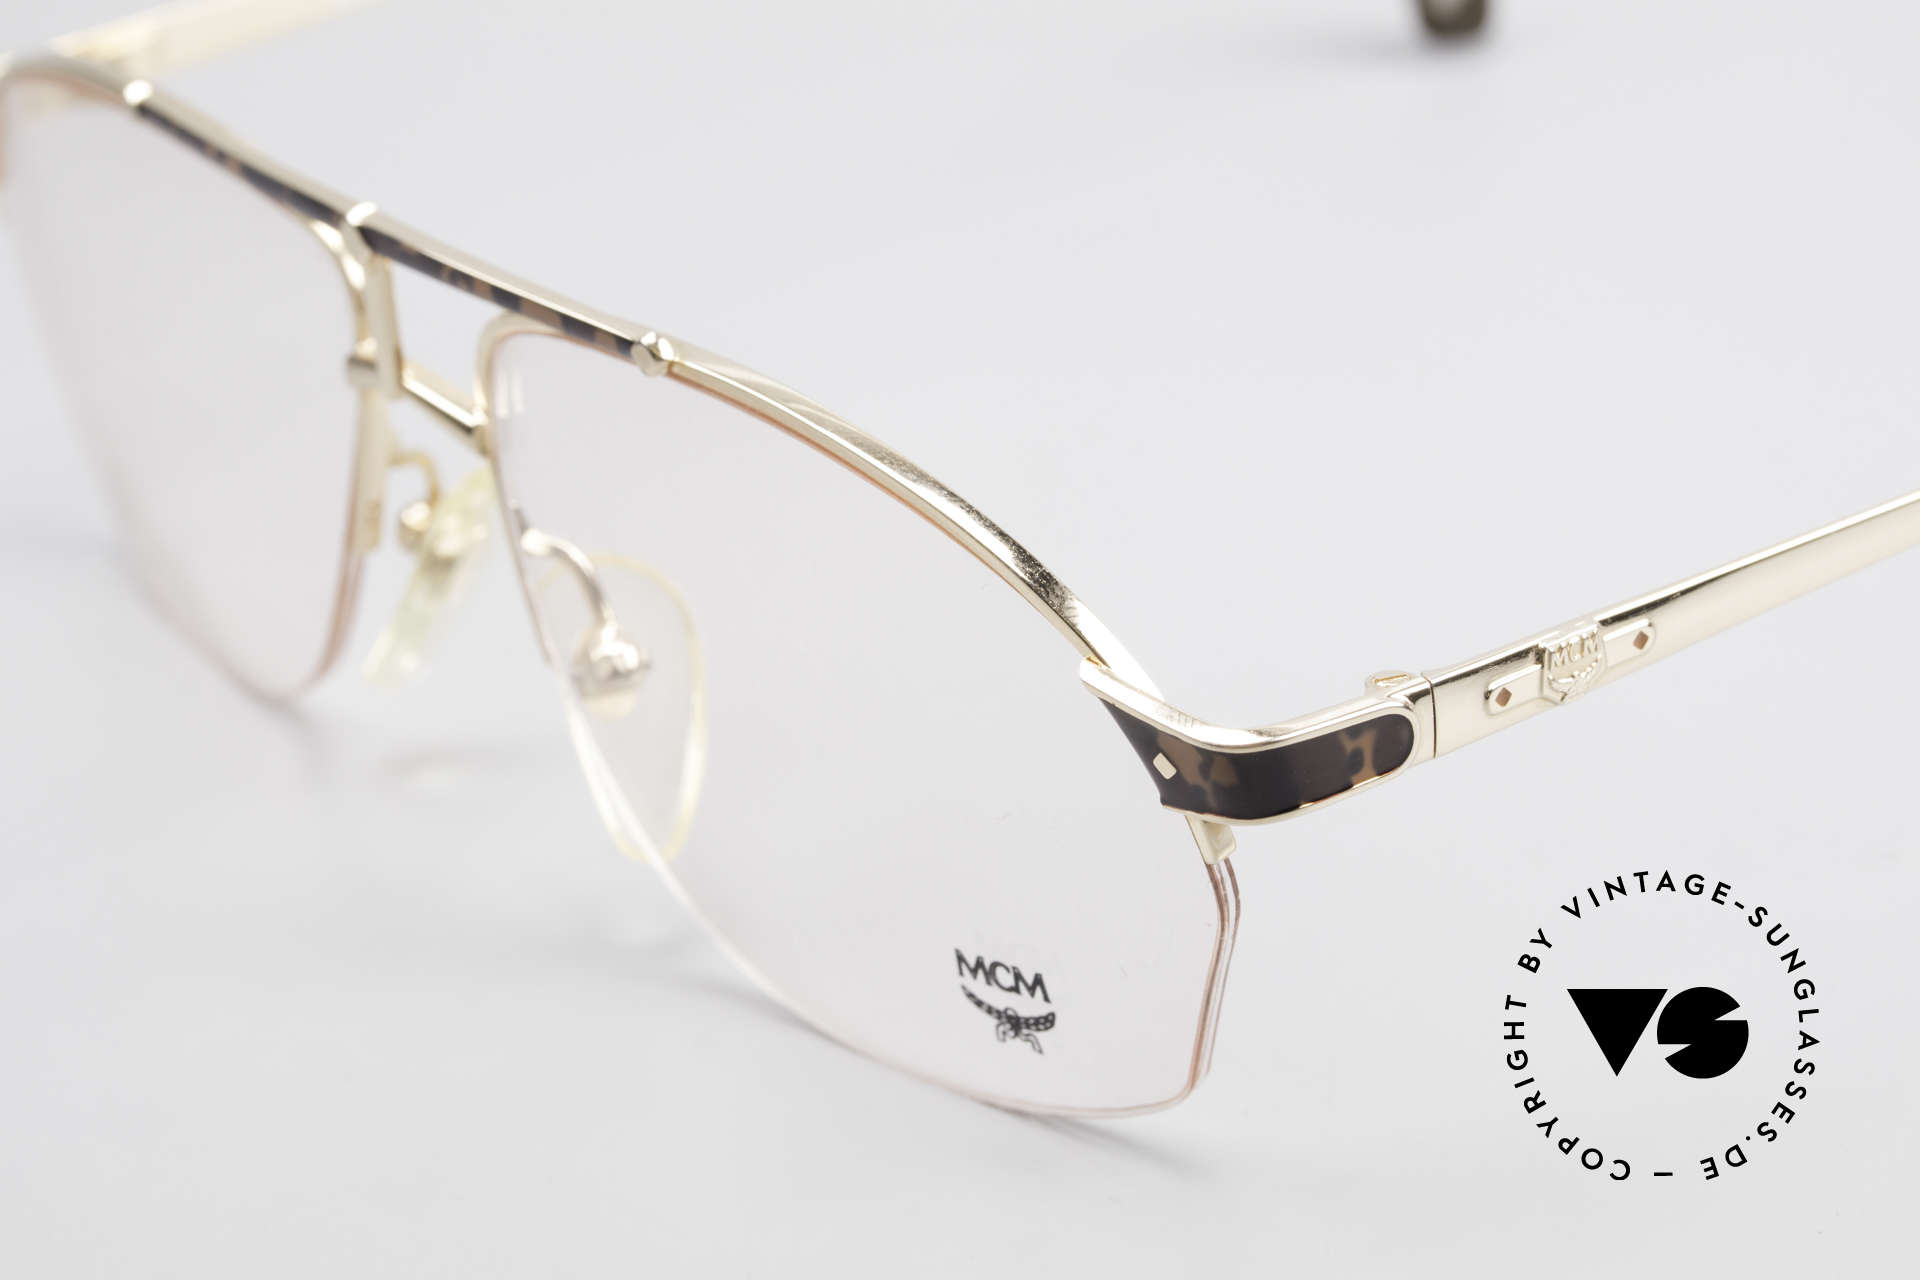 MCM München 10 Gold Plated Frame Root Wood, very comfortable frame (semi rimless) in L size 56/22, Made for Men